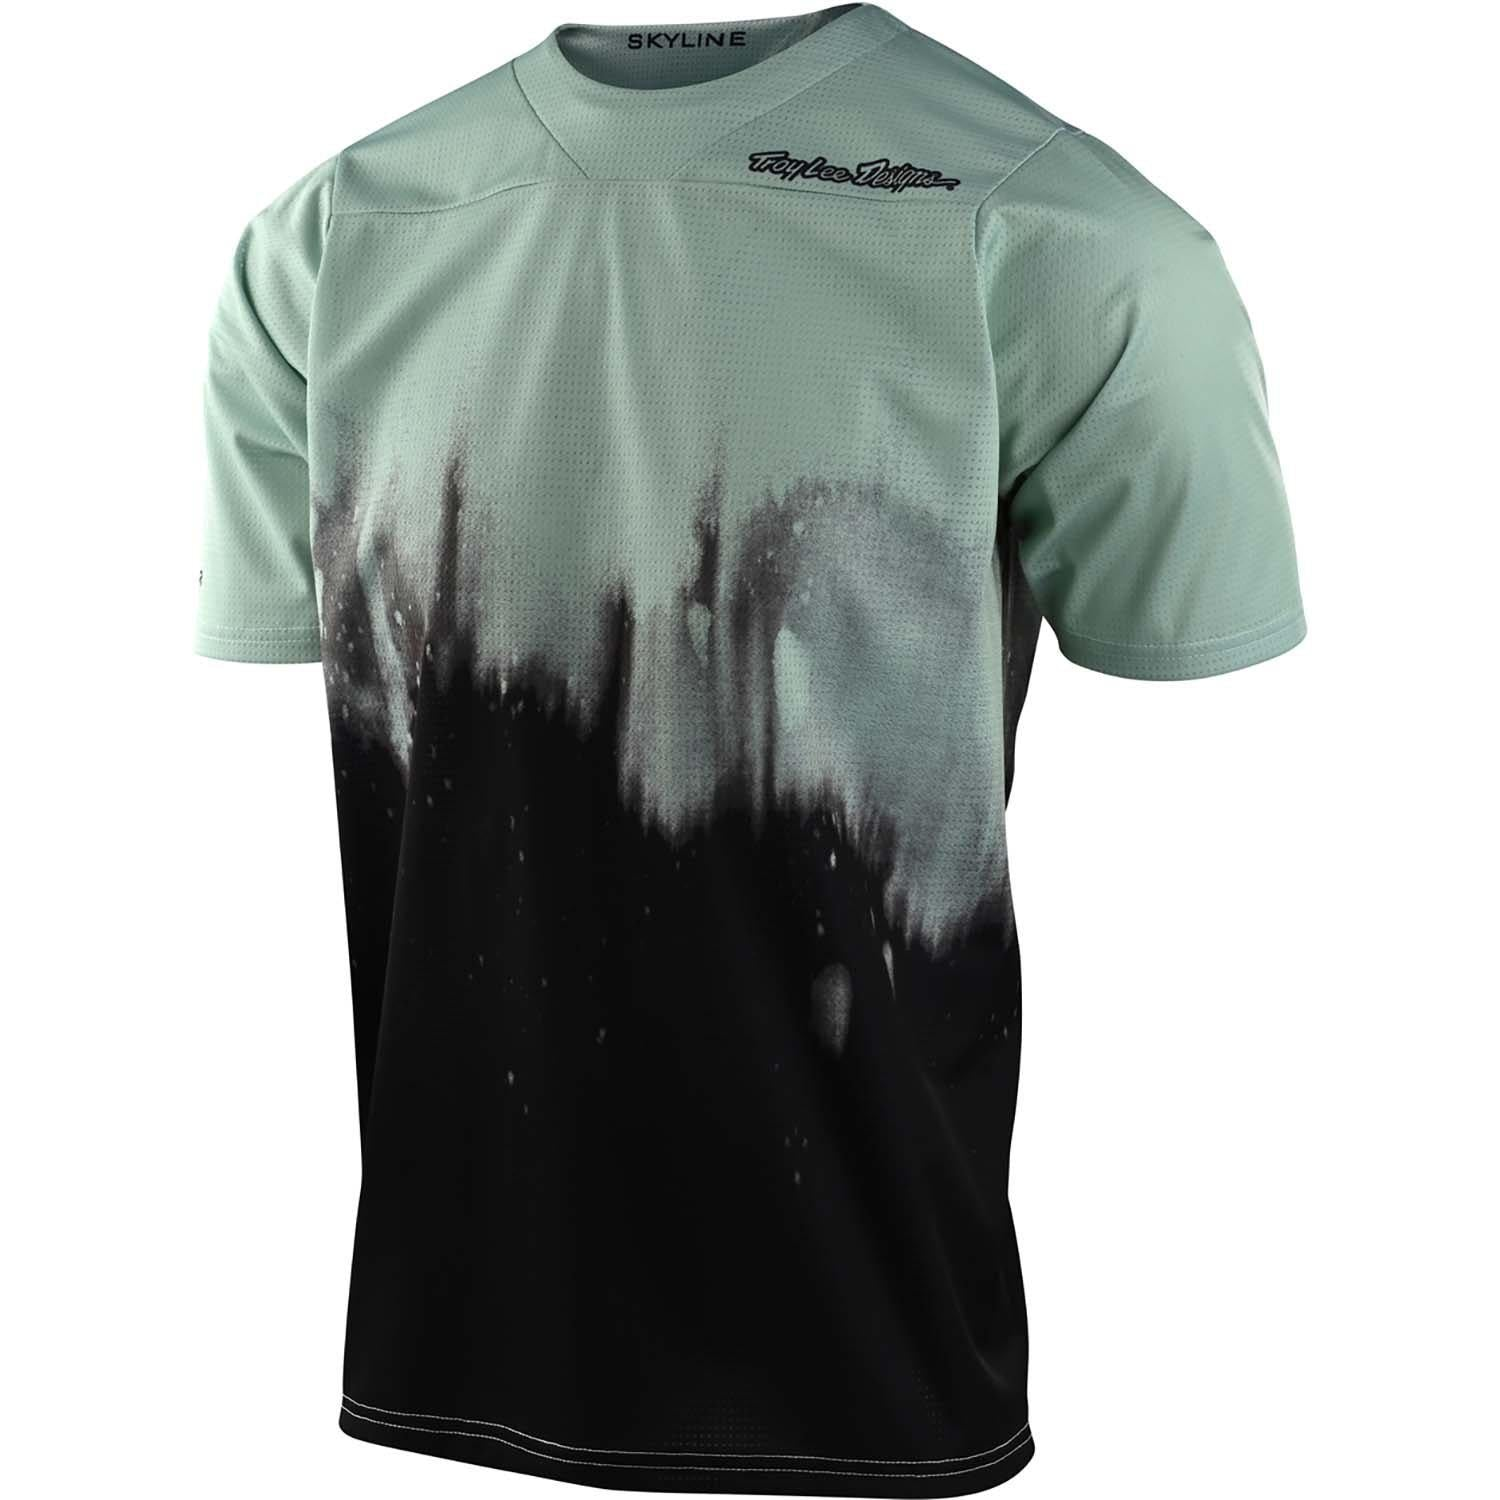 Troy Lee Designs-Troy Lee Designs Skyline Youth Jersey-Smoke Green/Black-Y-L-TLD328890004-saddleback-elite-performance-cycling